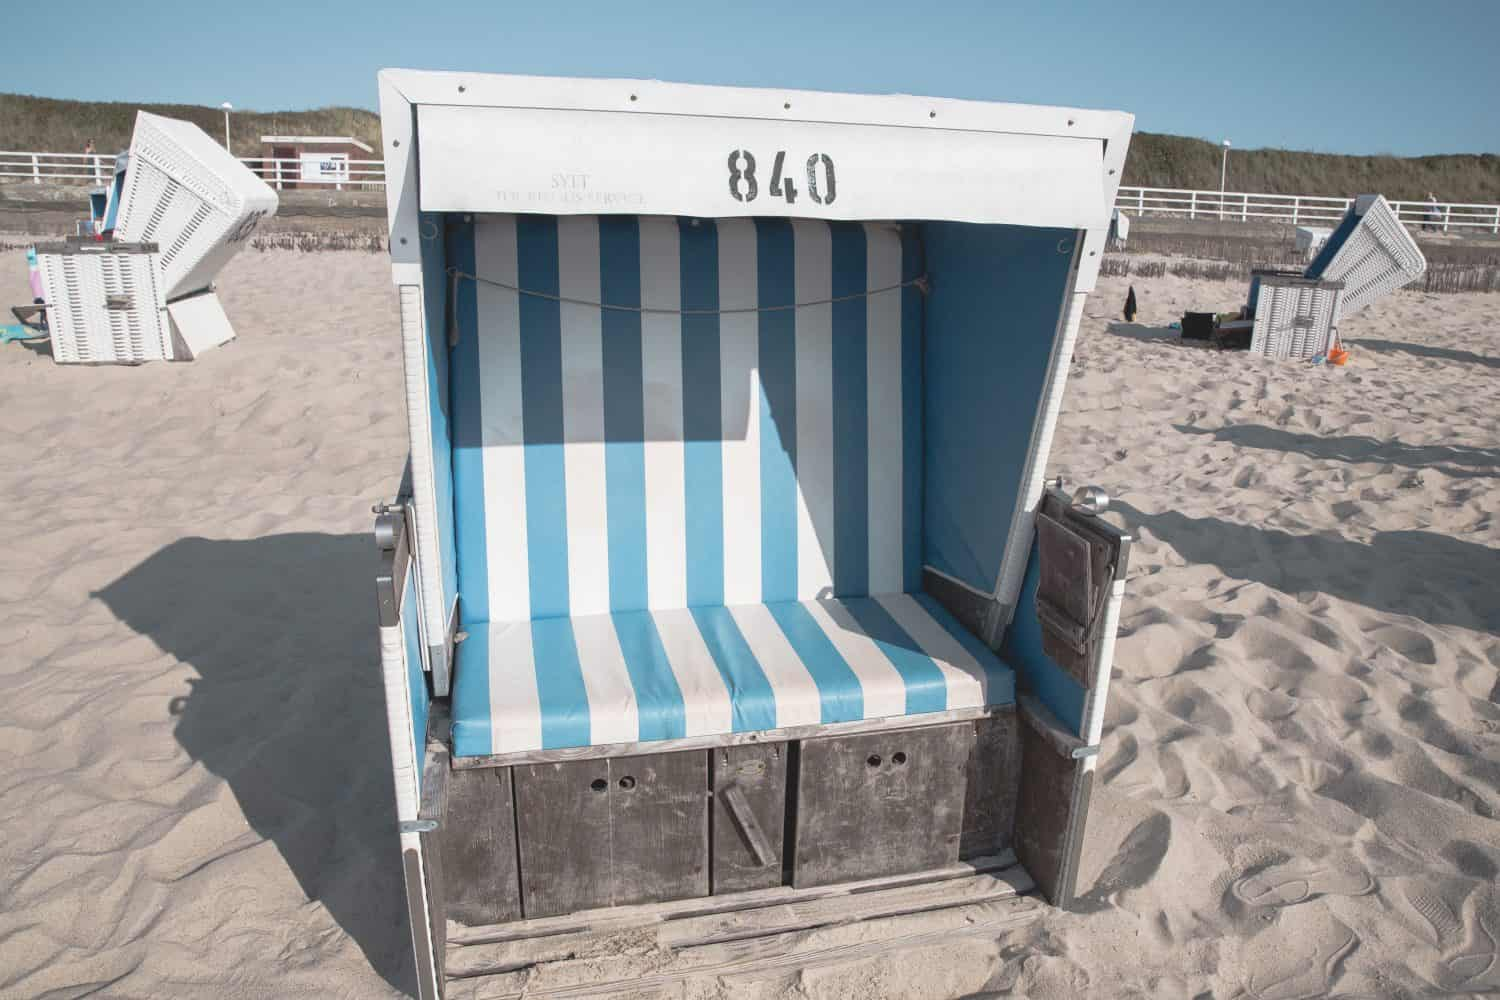 A strandkorb, or fancy beach chair, on one of the beaches in Sylt, Germany.